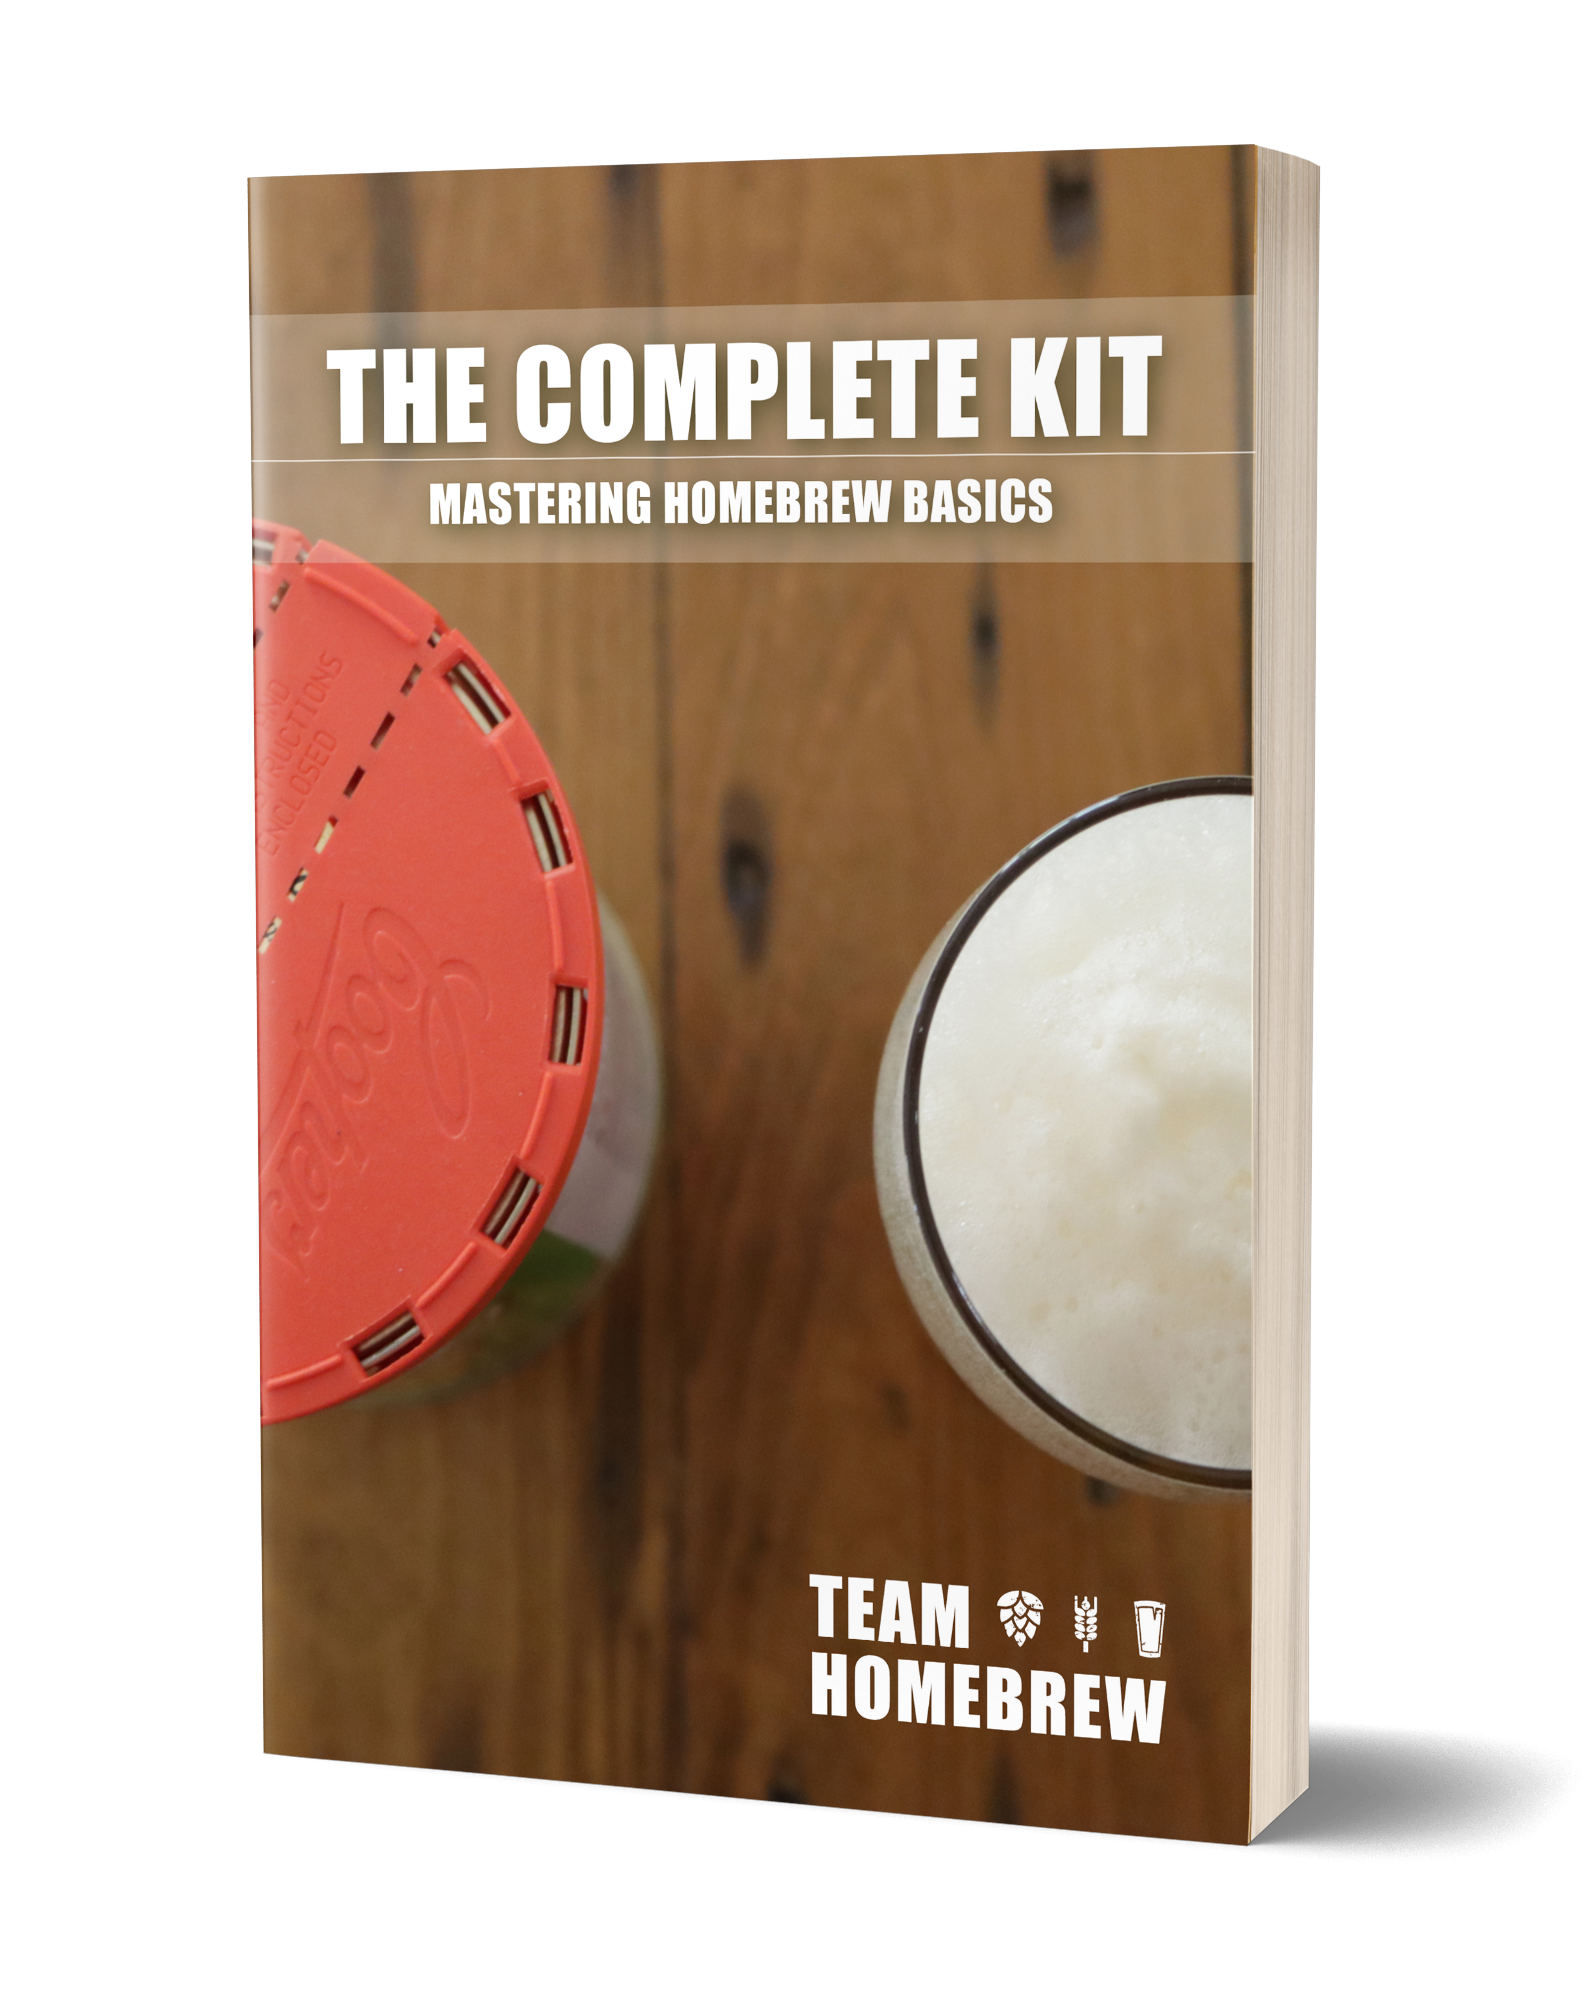 Homebrewing for beginners - the essential guide